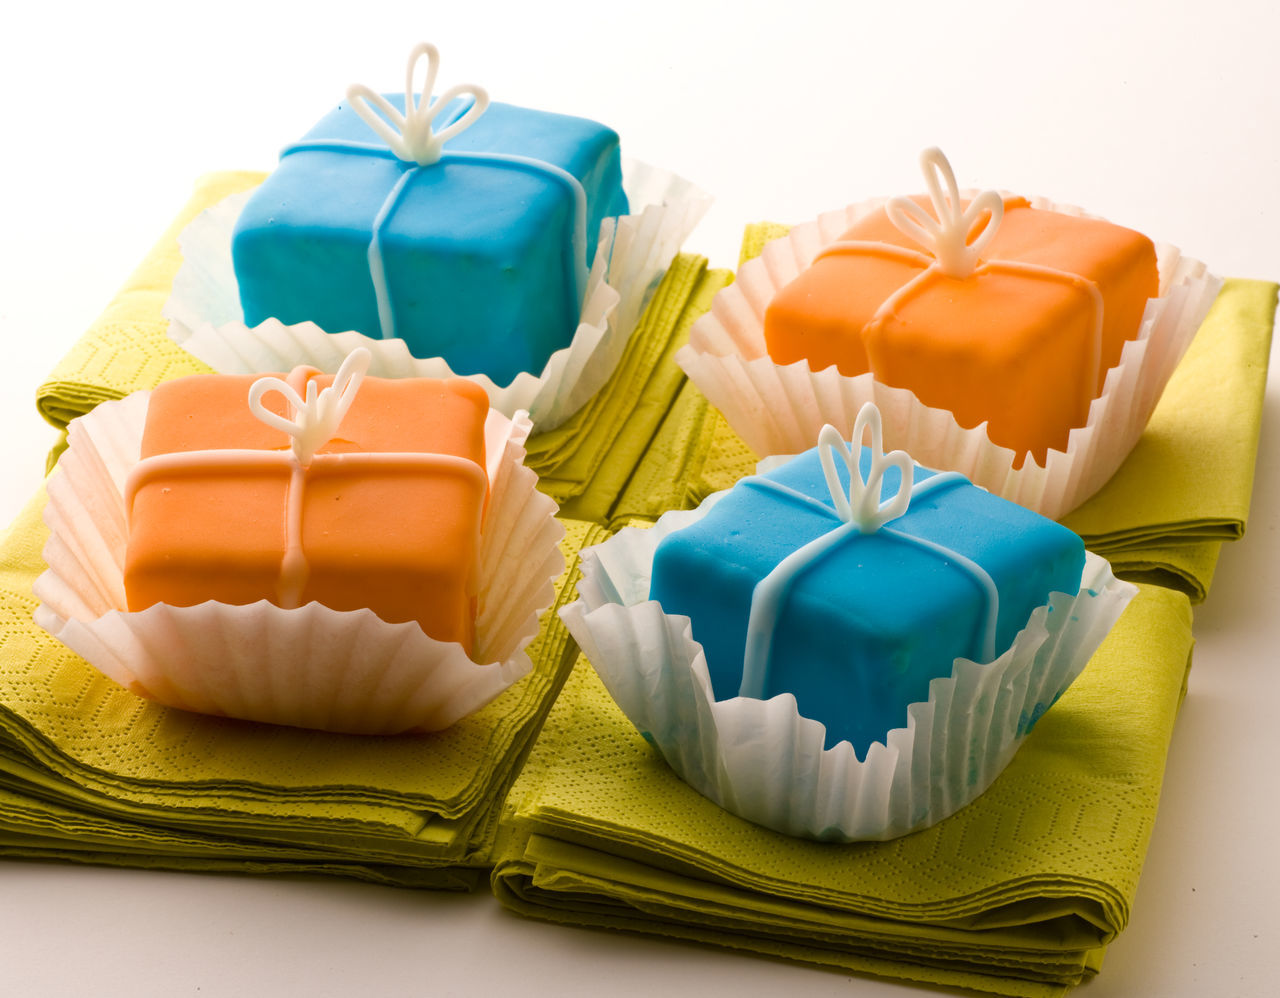 Small desserts Birthday Present Blue Celebration Celebration Event Christmas Christmas Present Close-up Decorations Desserts Four Gift Napkin No People Petite Petite Fours Red Sunset Sweets Tied Bow White Background Wrapped Wrapping Paper